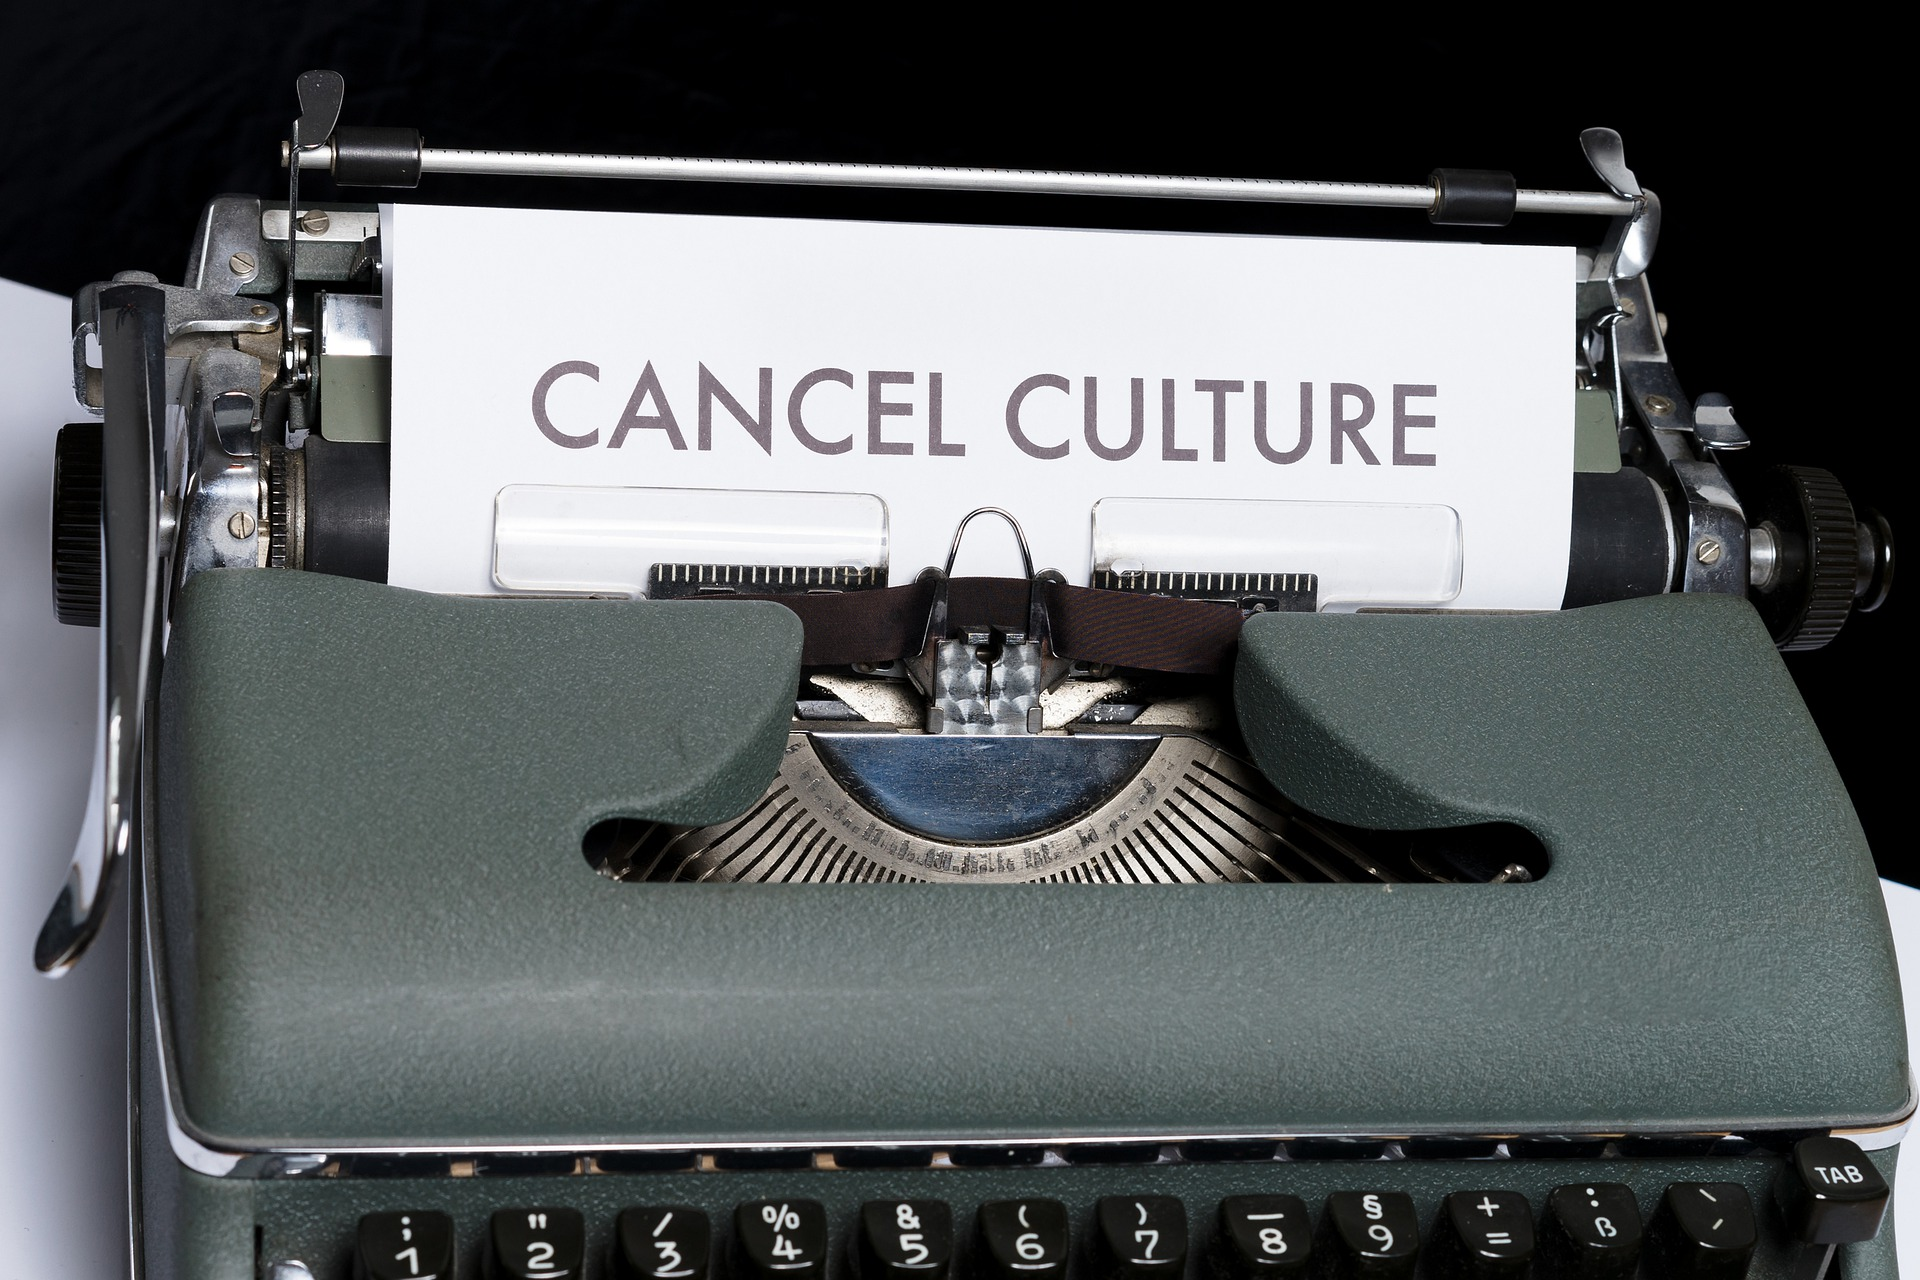 TAKING A RISK IN A CANCEL CULTURE CLIMATE